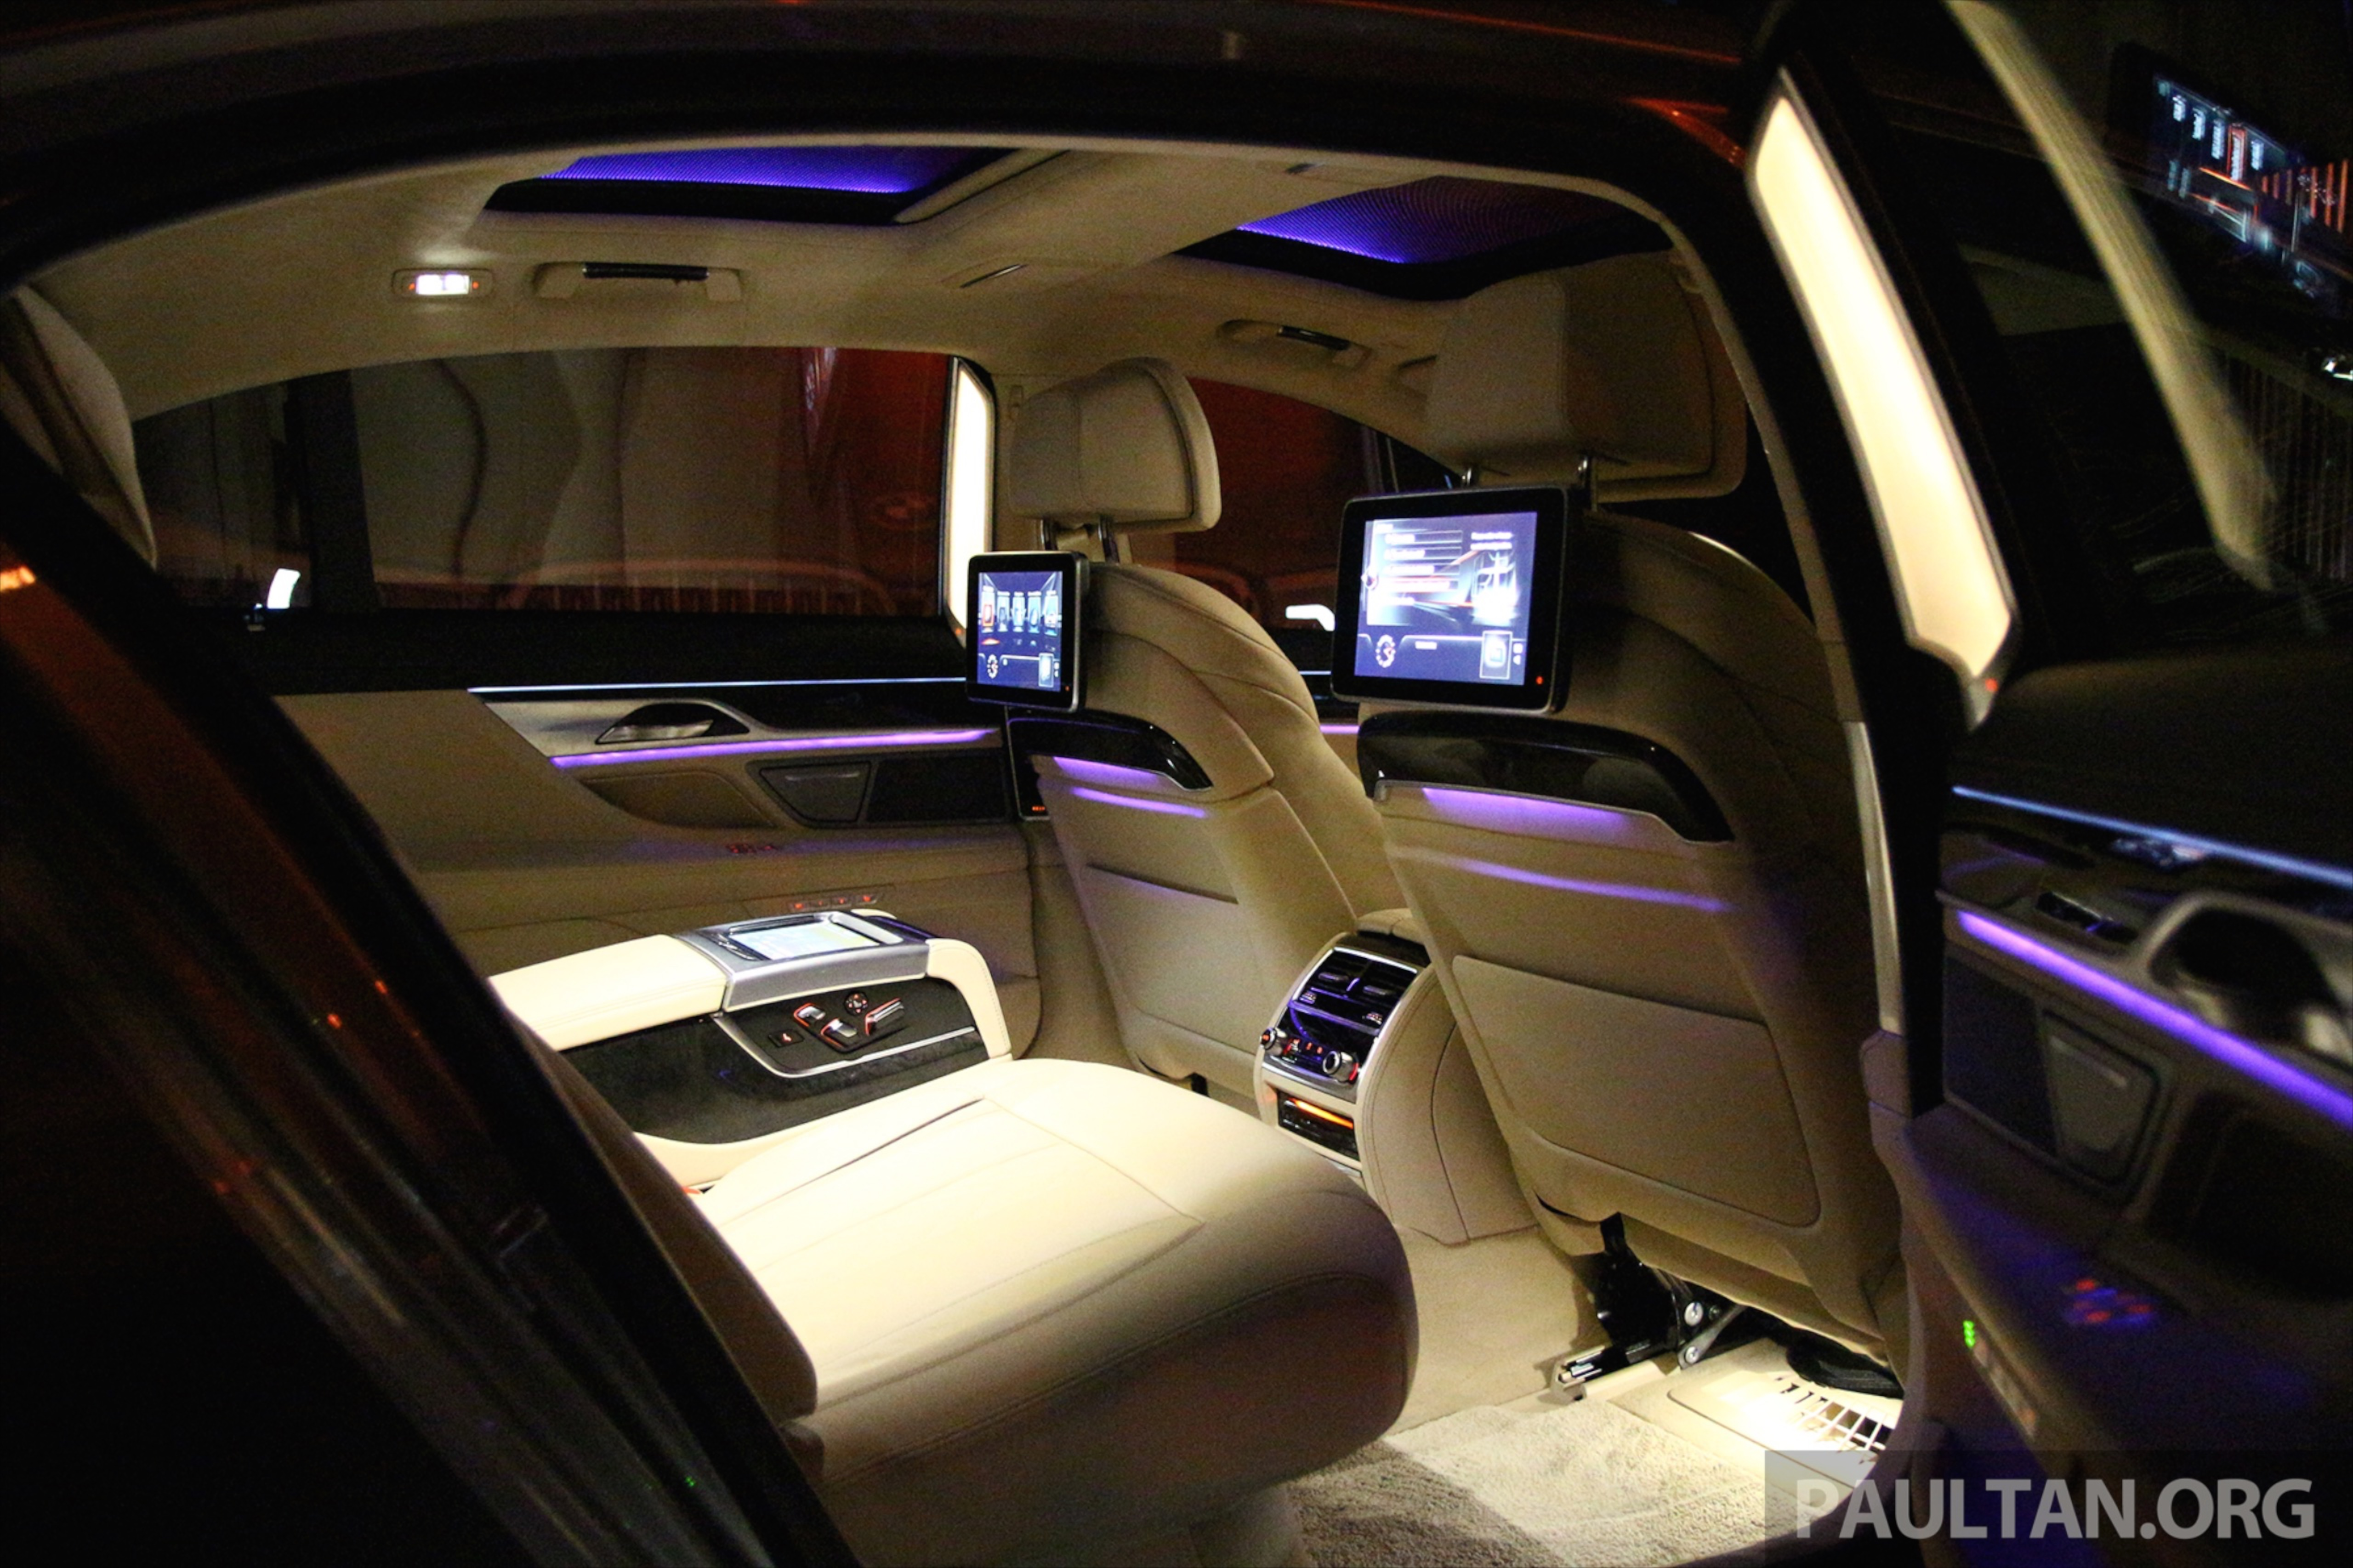 gallery bmw 7 series sky lounge panoramic roof paul tan image 436548. Black Bedroom Furniture Sets. Home Design Ideas